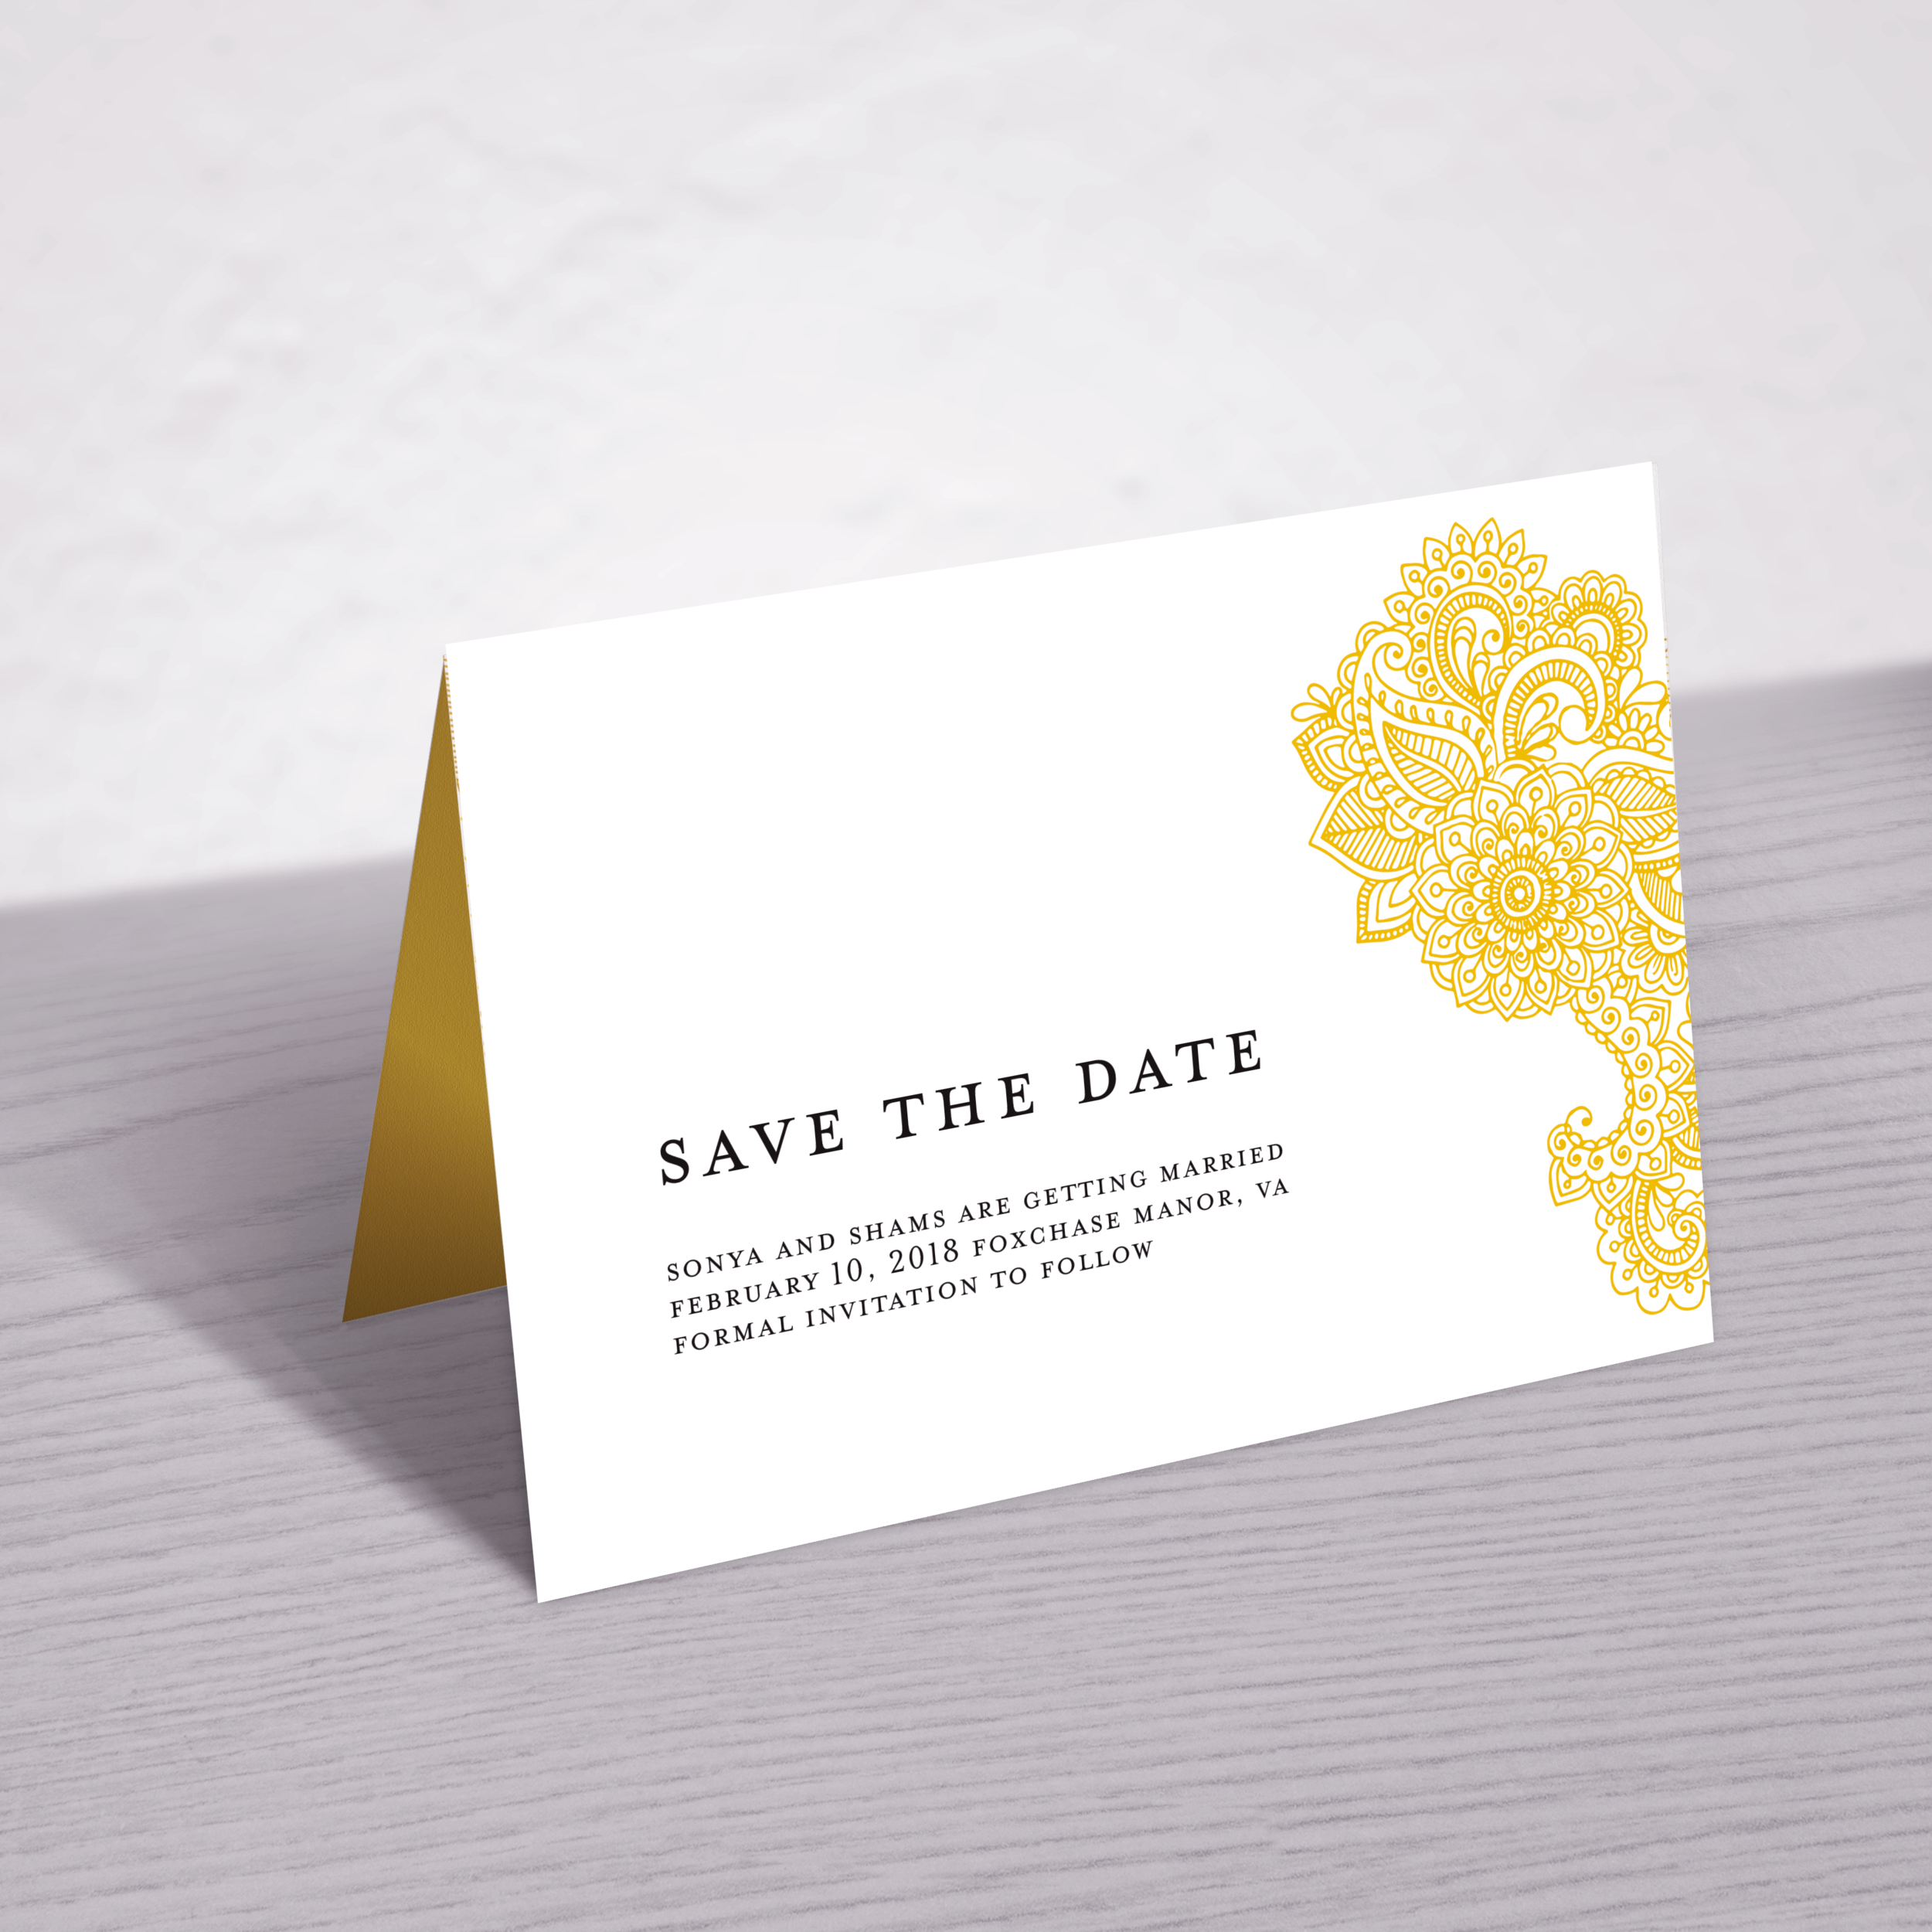 save_the_date_mockup.png